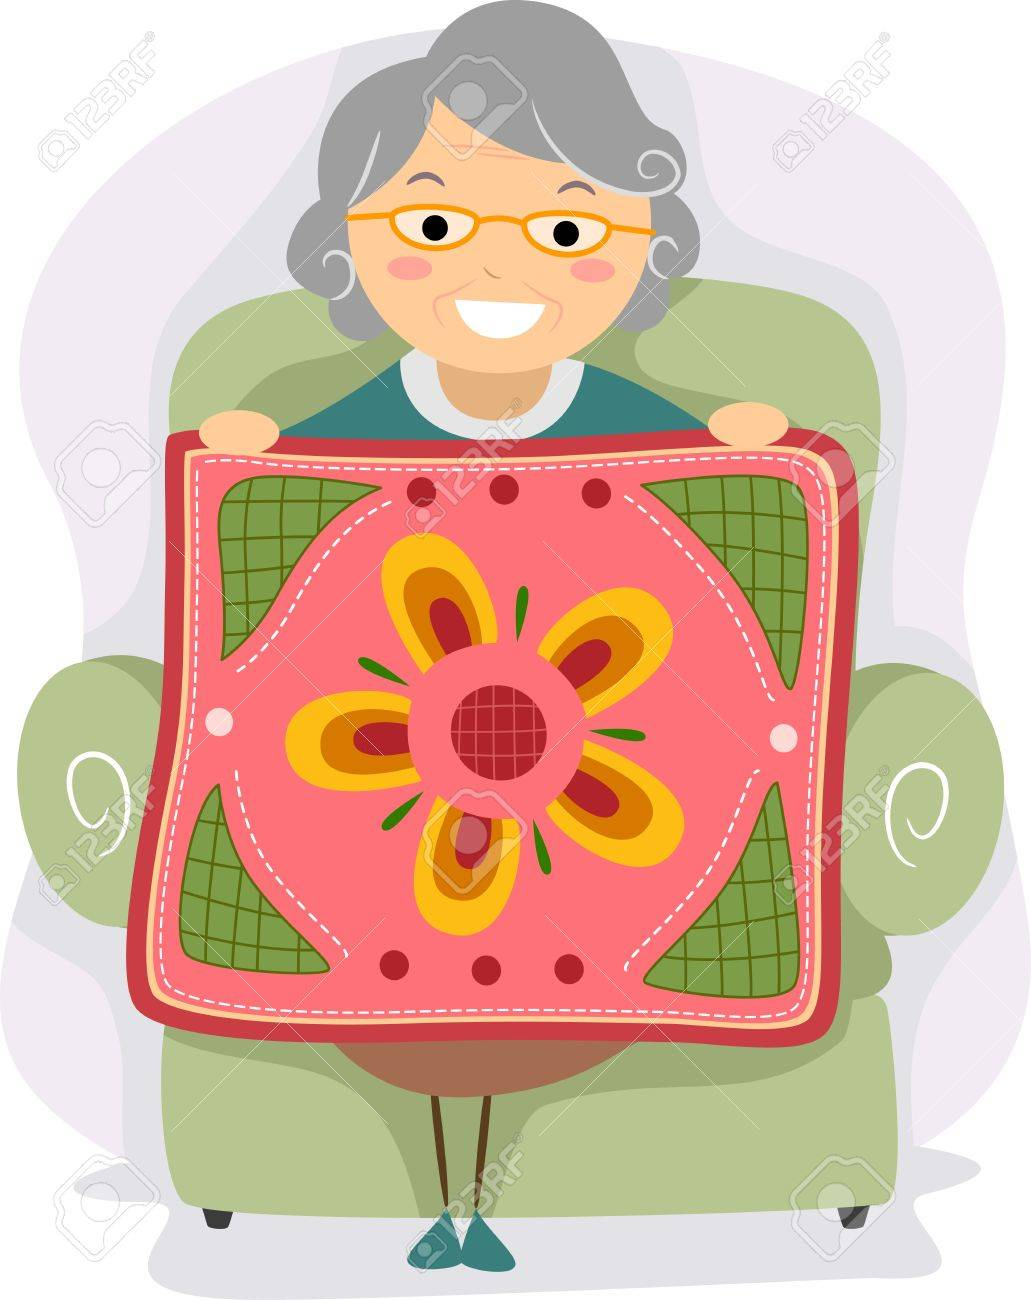 Illustration Of A Grandmother Proudly Holding A Quilt Stock Photo Picture And Royalty Free Image Image 12325627